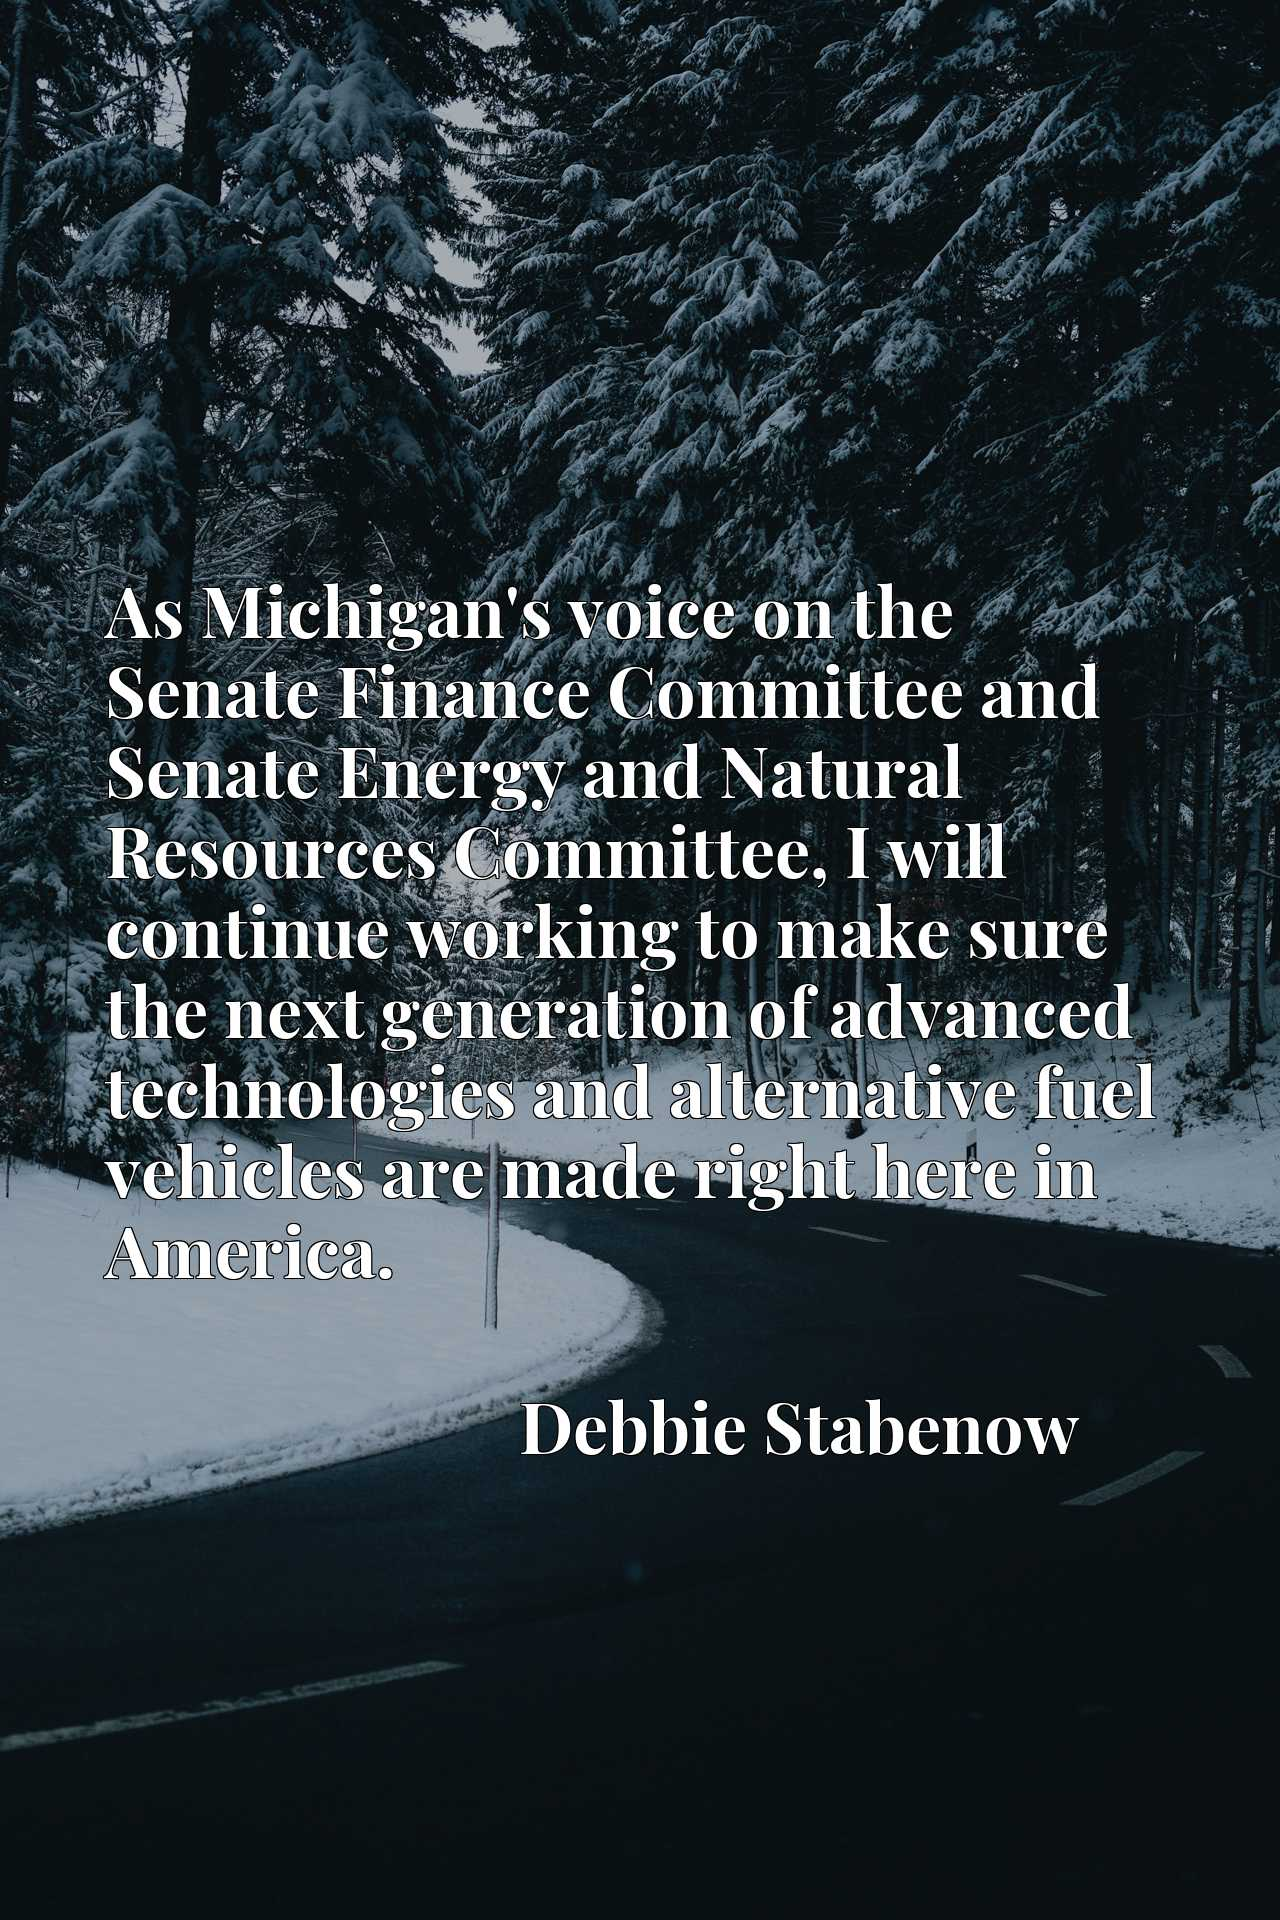 As Michigan's voice on the Senate Finance Committee and Senate Energy and Natural Resources Committee, I will continue working to make sure the next generation of advanced technologies and alternative fuel vehicles are made right here in America.